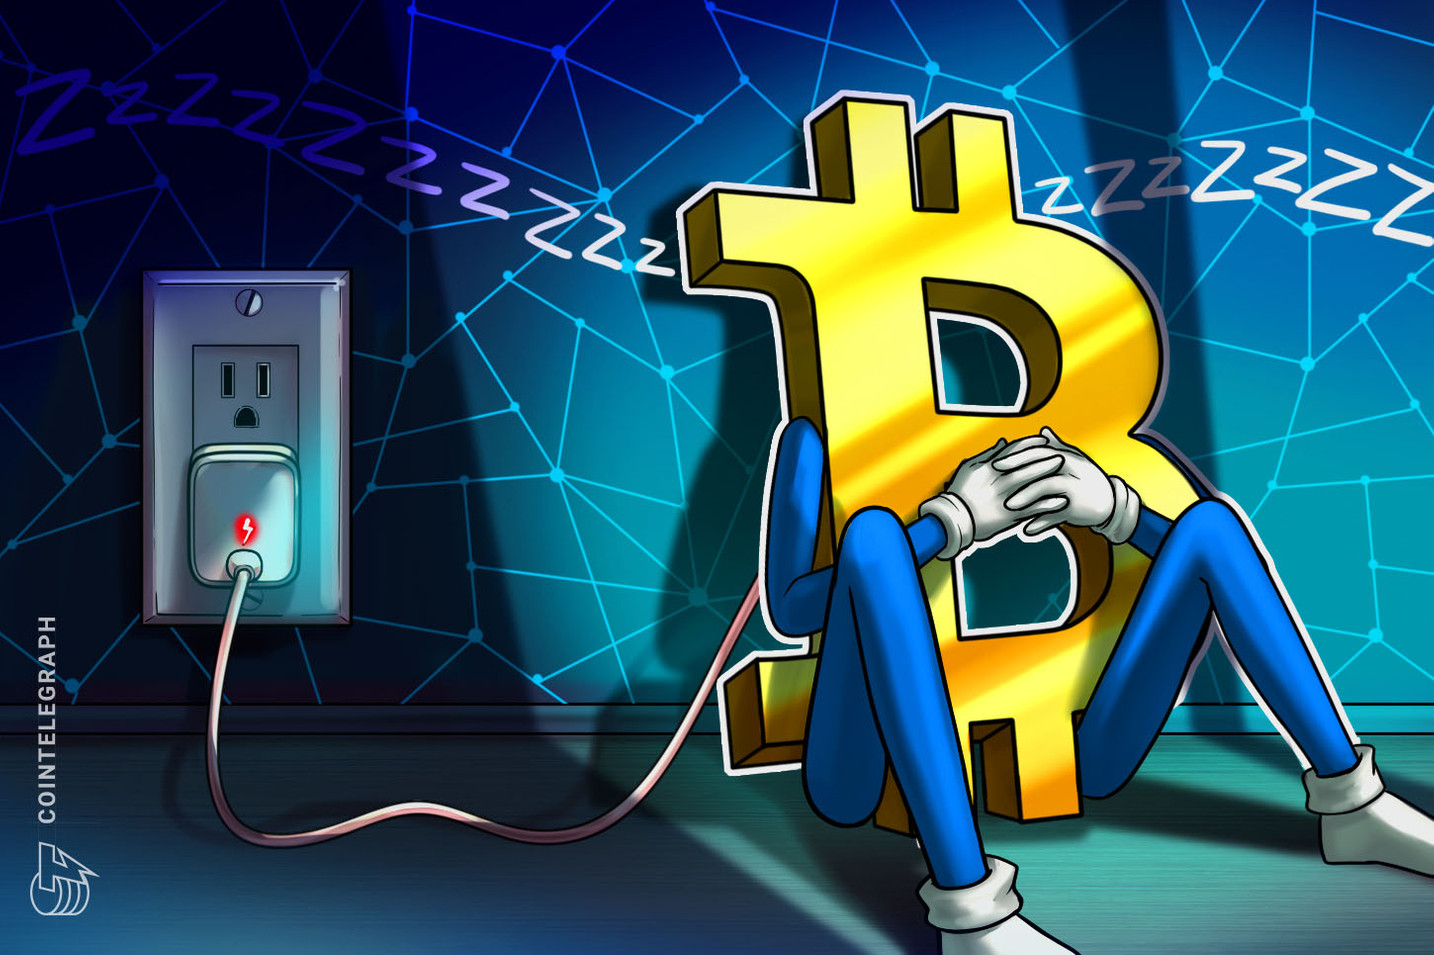 Portuguese power company to accept Bitcoin for electricity bills